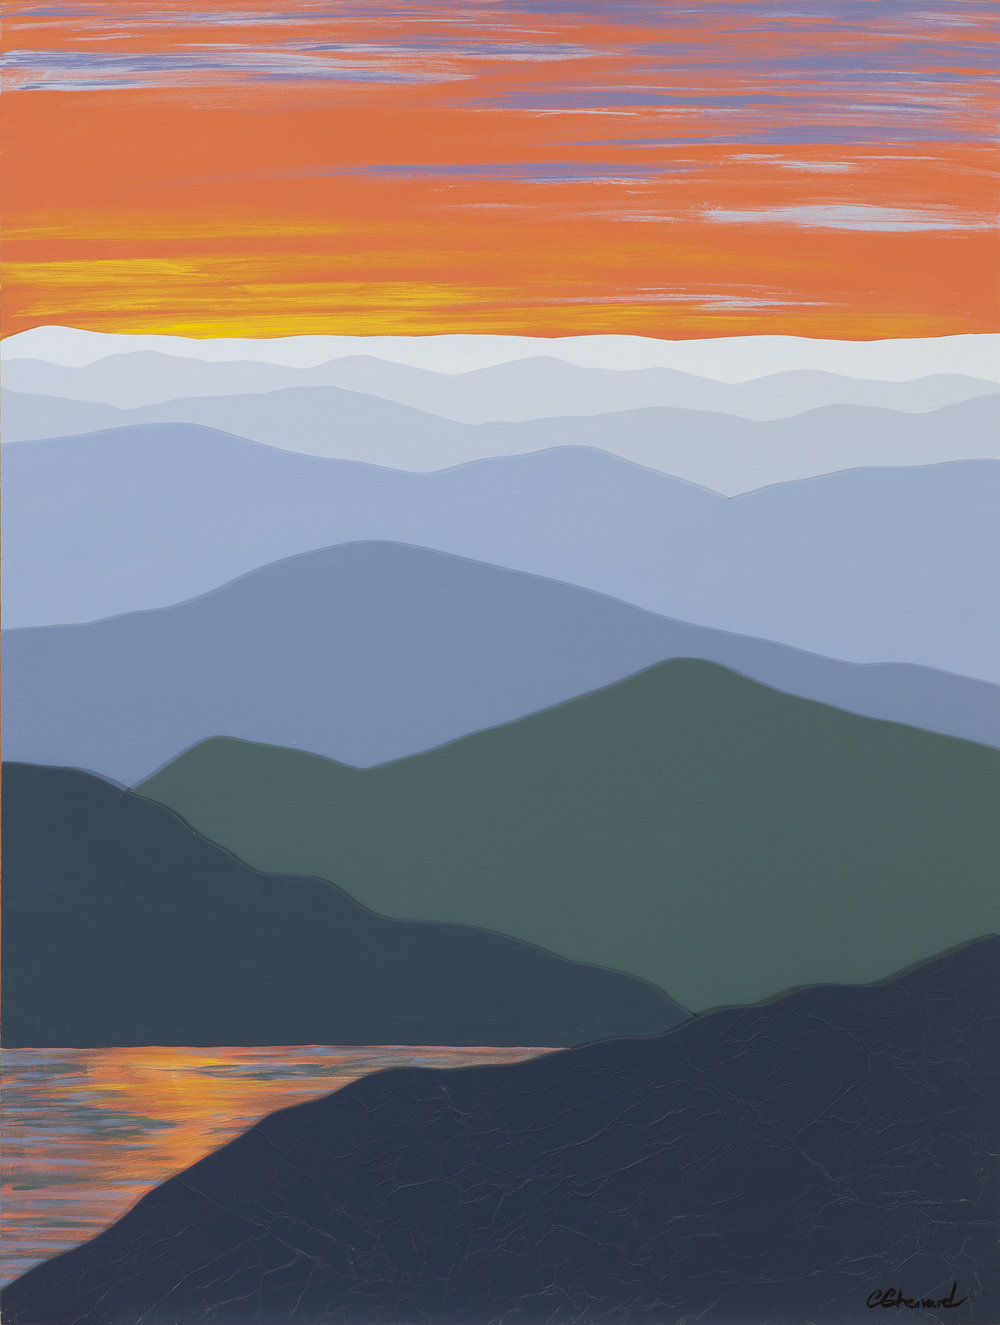 """""""Sunset Reflections 3D 148"""",  Acrylic on Layers of Wood,  18x24 inches,  $550. SOLD - But I can make a similar piece."""